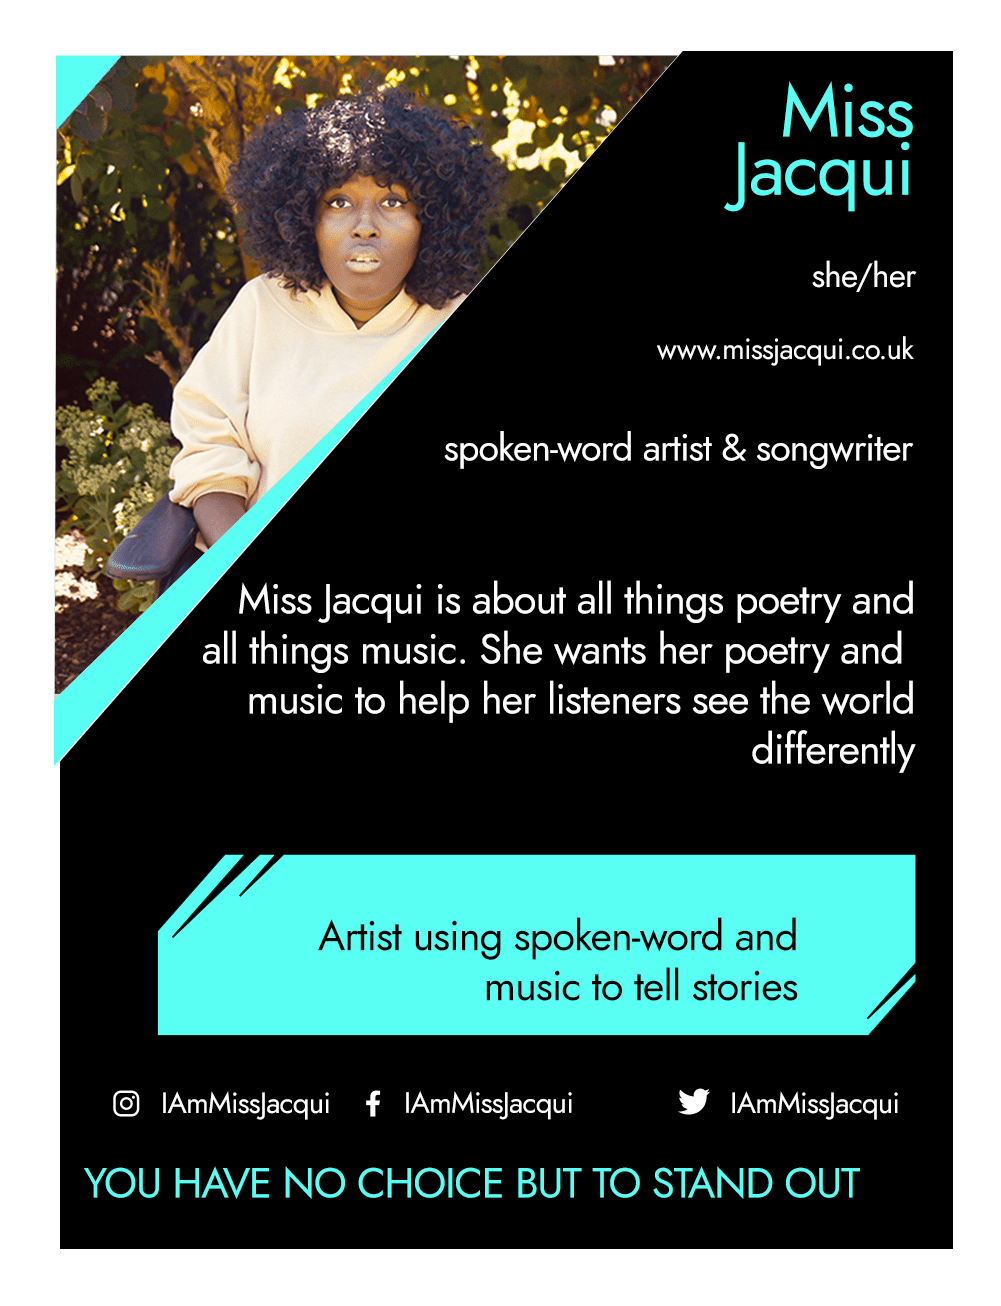 This is the front of an artist announcement card for Miss Jacqui. The design is styled on an American baseball card. The card has a thin white border and the rest of the card is black with turquoise accents. On the left hand corner, there is a triangular cross section of a photo of Miss Jacqui. Miss Jacqui is a Black woman with lots of curly hair. She is looking at the camera and is wearing a beige coloured top. She is seated outdoors surrounded by trees and plants. To the right of the photo, there is the artist's name, Miss Jacqui, pronouns, she/her, website, www.missjacqui.co.uk, and artistic practice, spoken-word artist and songwriter. Below this is a short artist biography, which reads Miss Jacqui is about all things poetry and all things music. She wants her poetry and music to help her listeners to see the world differently. In a turquoise rectangle below this, the card highlights what the artist's role is within CRIPtic. For Miss Jacqui this reads artist using spoken word and music to tell stories. Below this are the artist's social media handles @IAmMissJacqui, and a quote selected by the artist. This reads: You have no choice but to stand out.